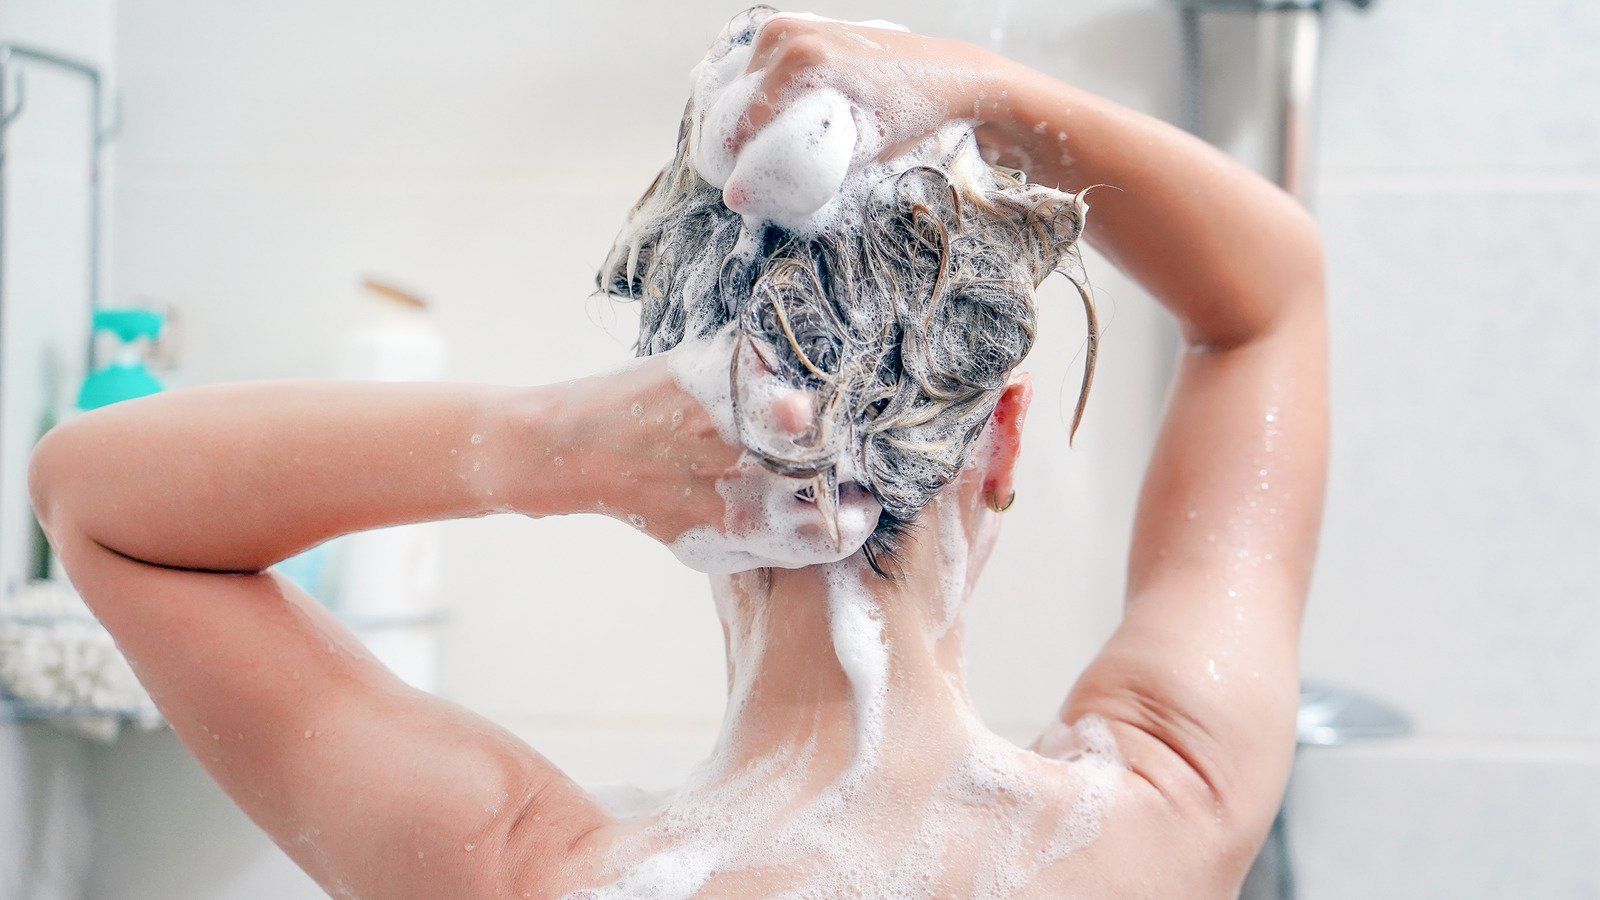 When You Stop Showering, This Is What Happens To You